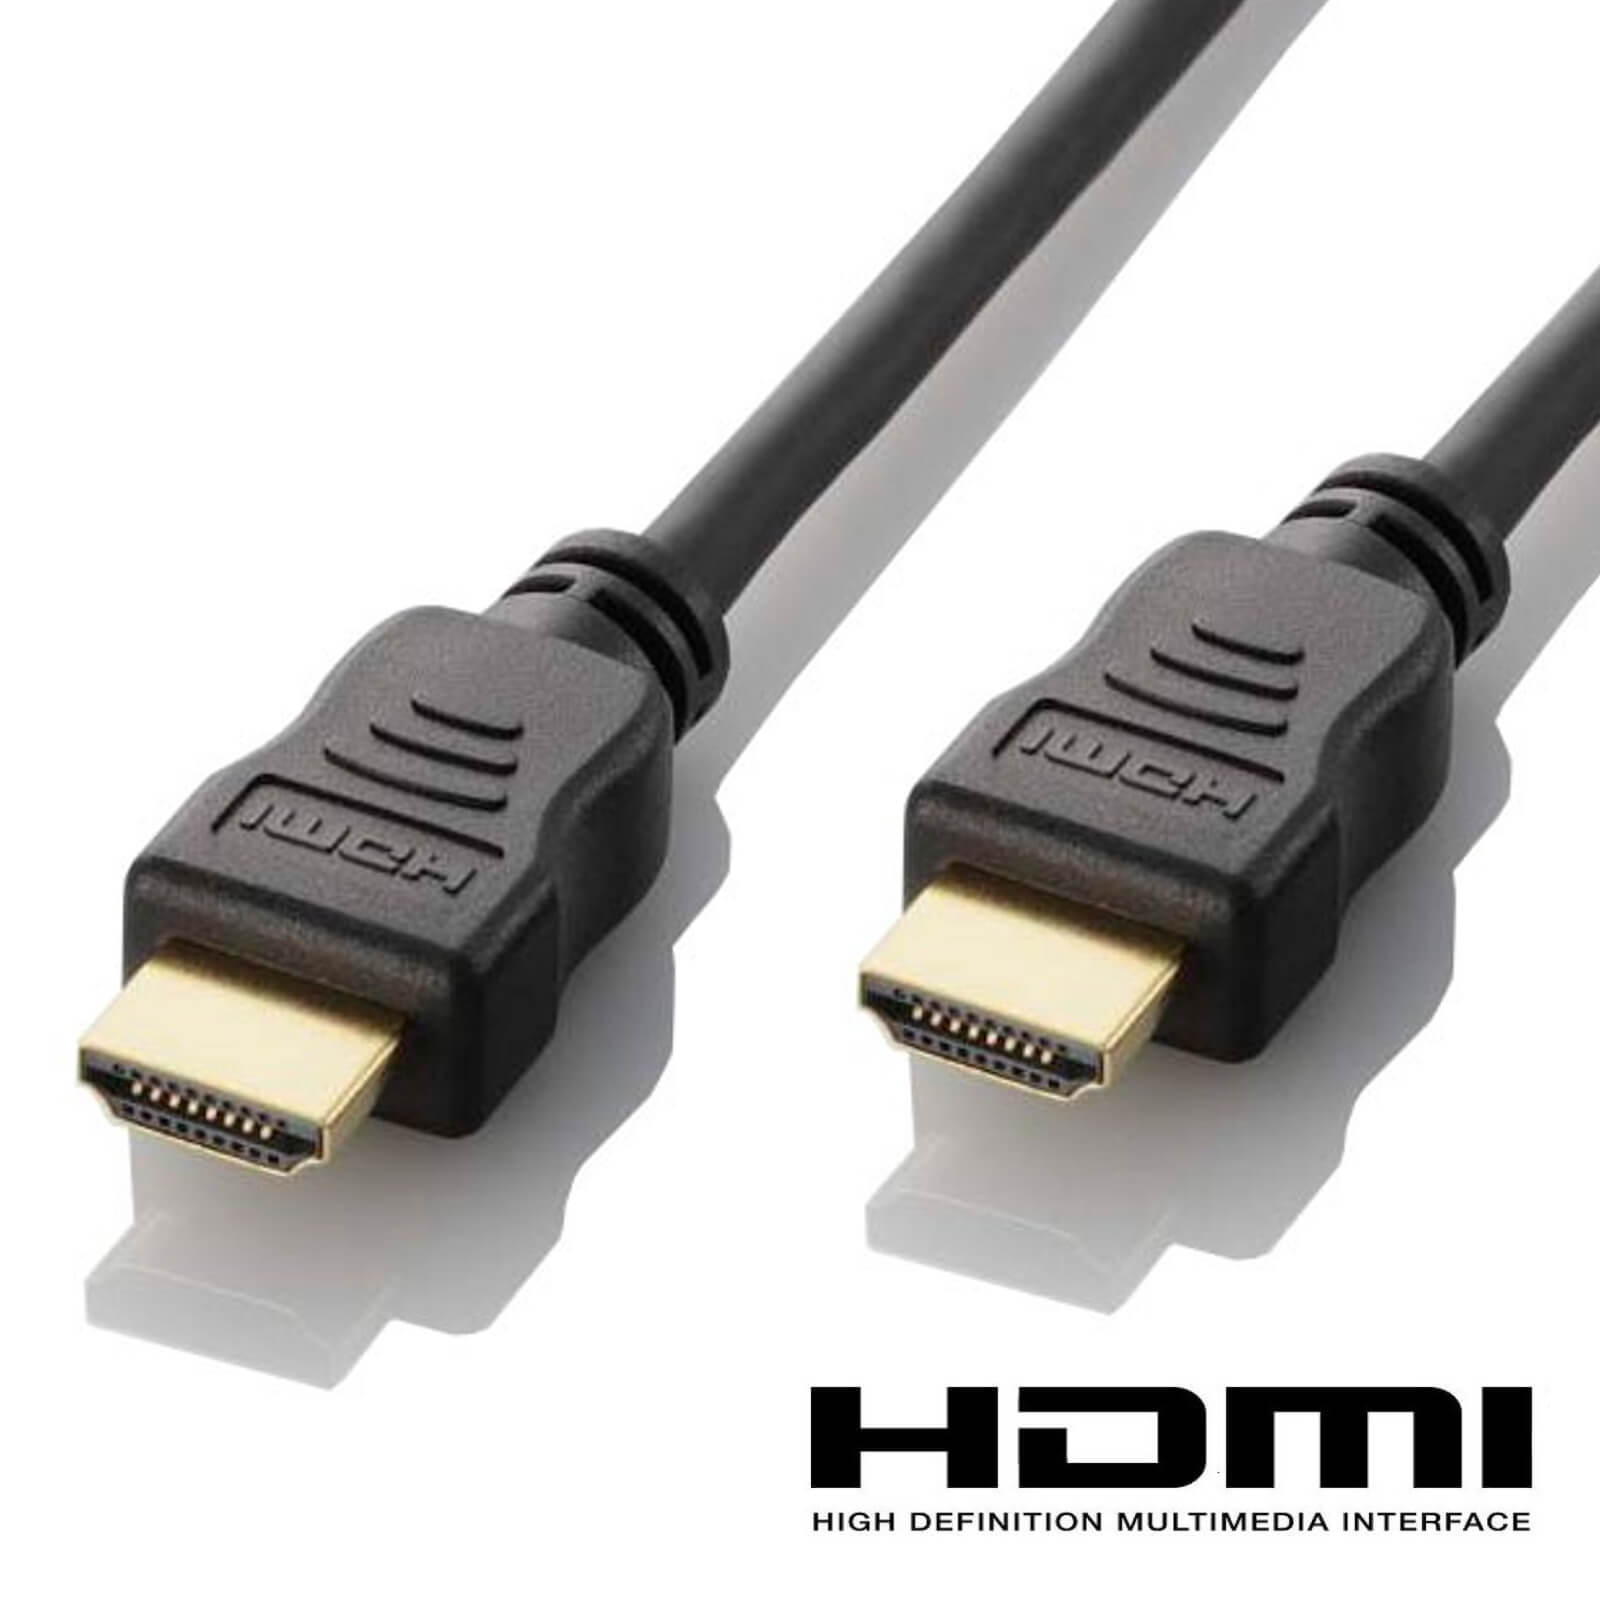 hight resolution of toshiba satellite radius qosmio laptop hdmi to hdmi 4k ultra hd tv 2m gold lead wire cord cable dorothy s home